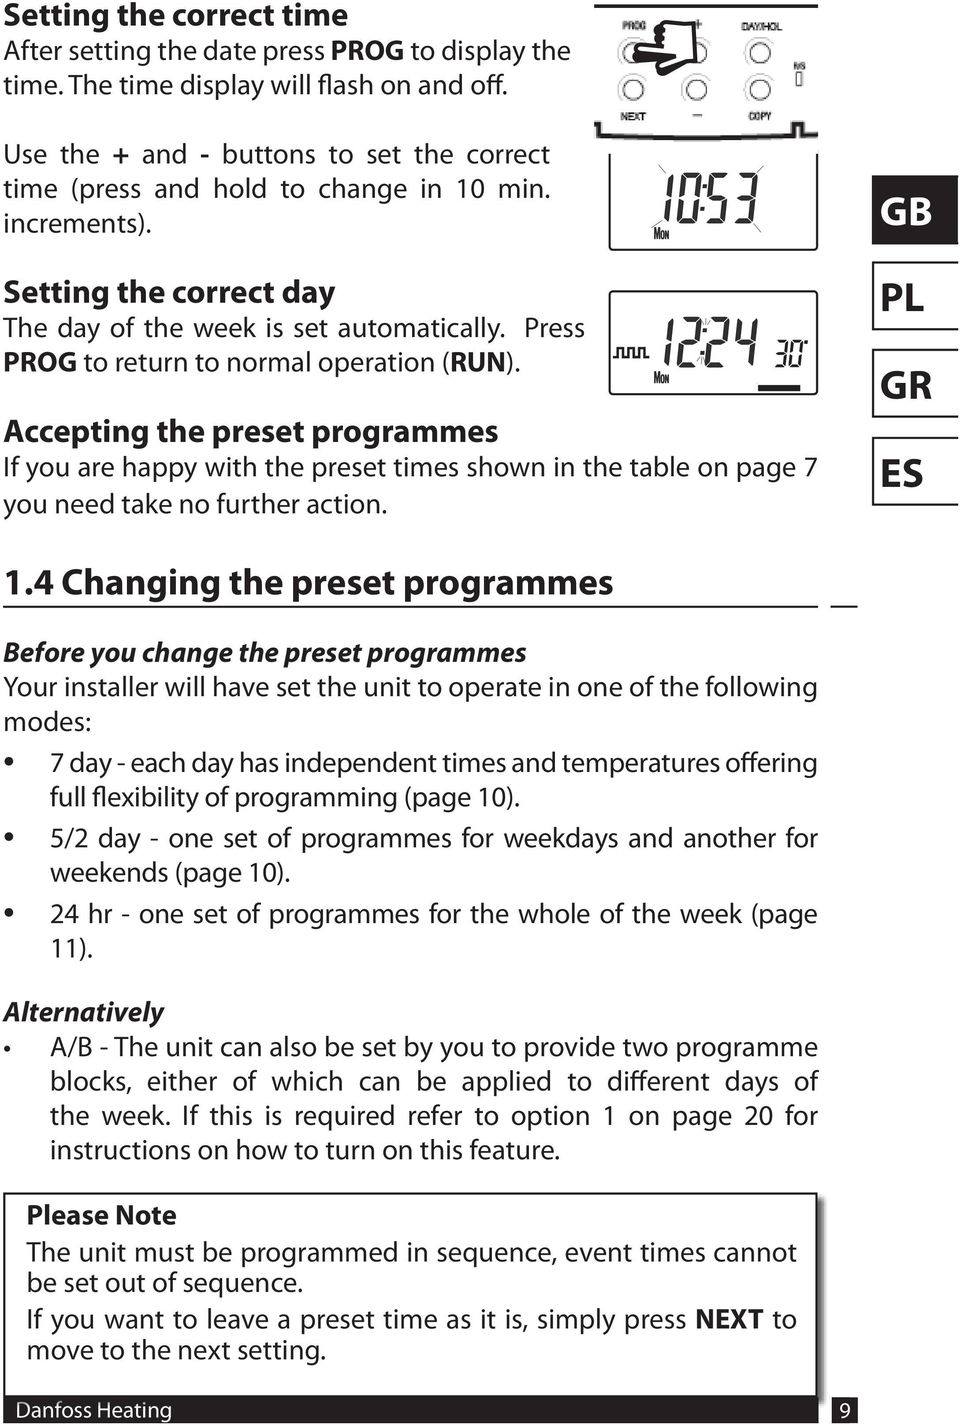 Press PROG to return to normal operation (RUN). Accepting the preset programmes If you are happy with the preset times shown in the table on page 7 you need take no further action. 1.